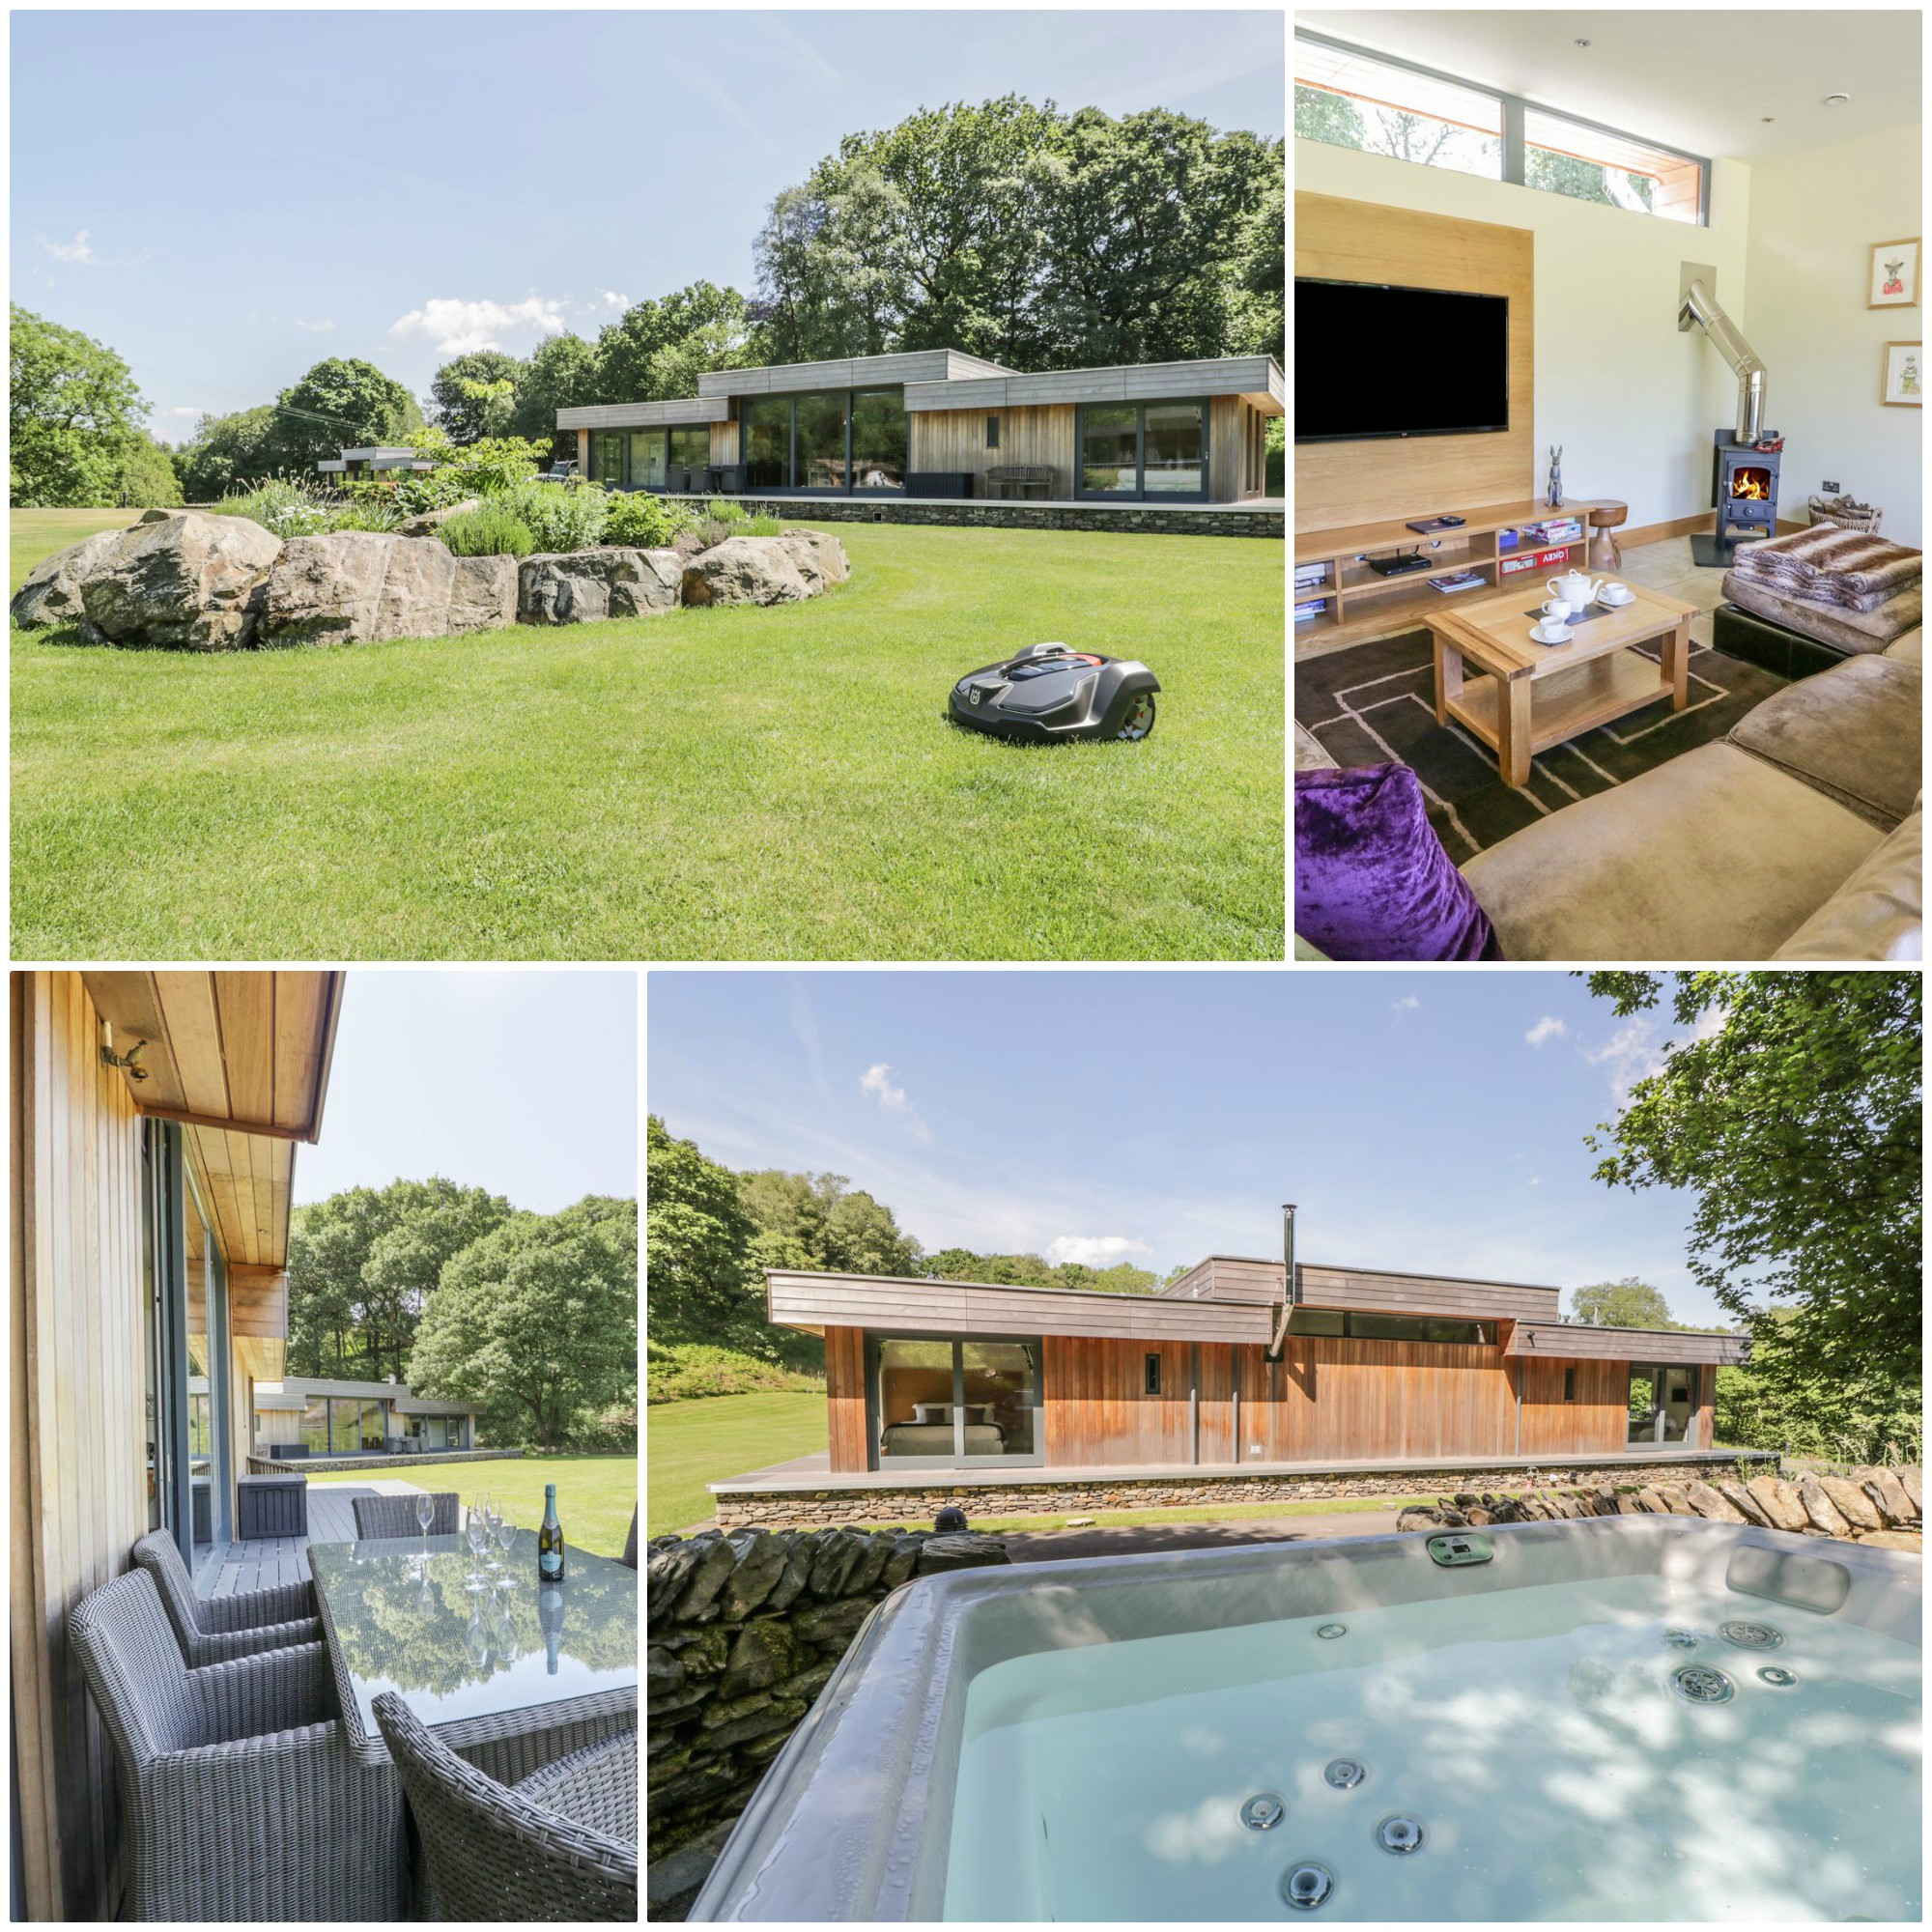 sleeps 6 in a tranquil setting with its own hot tub